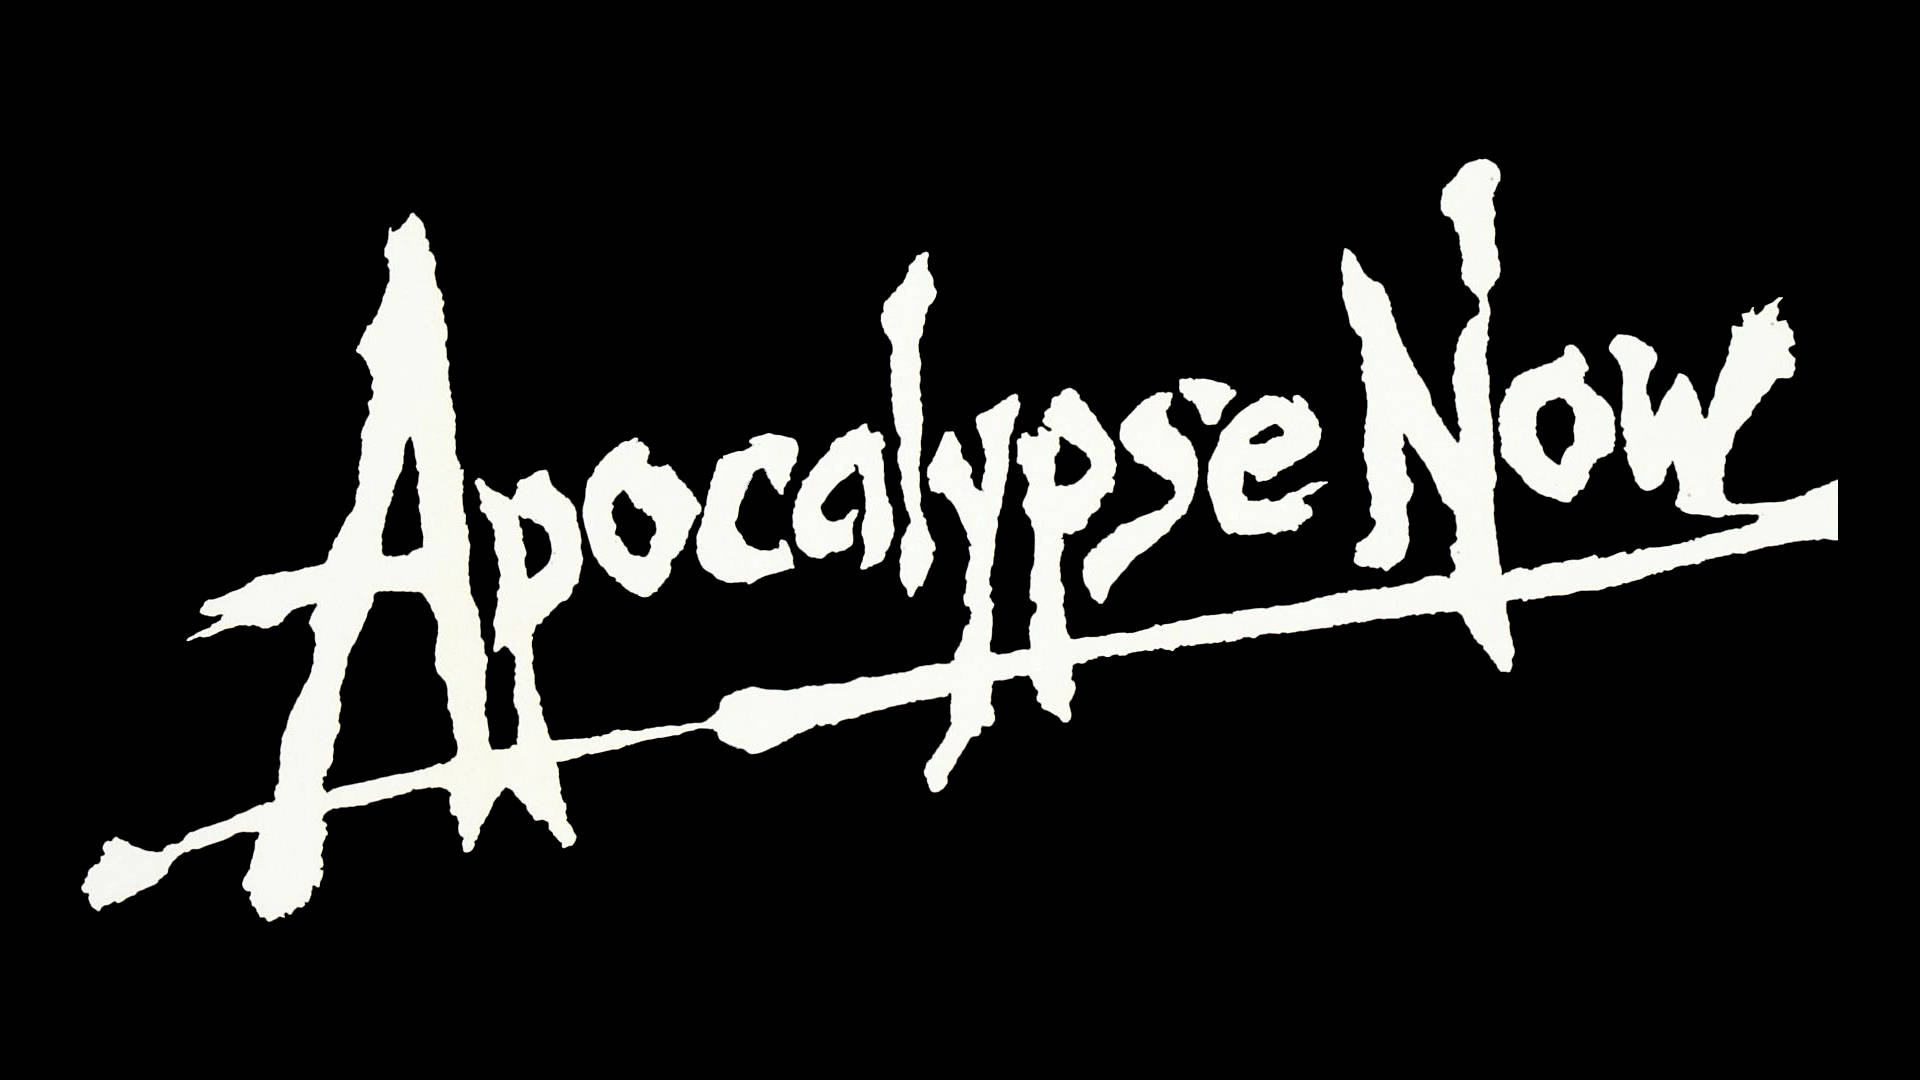 Apocalypse Now 19201080 Wallpaper 865859 1920x1080